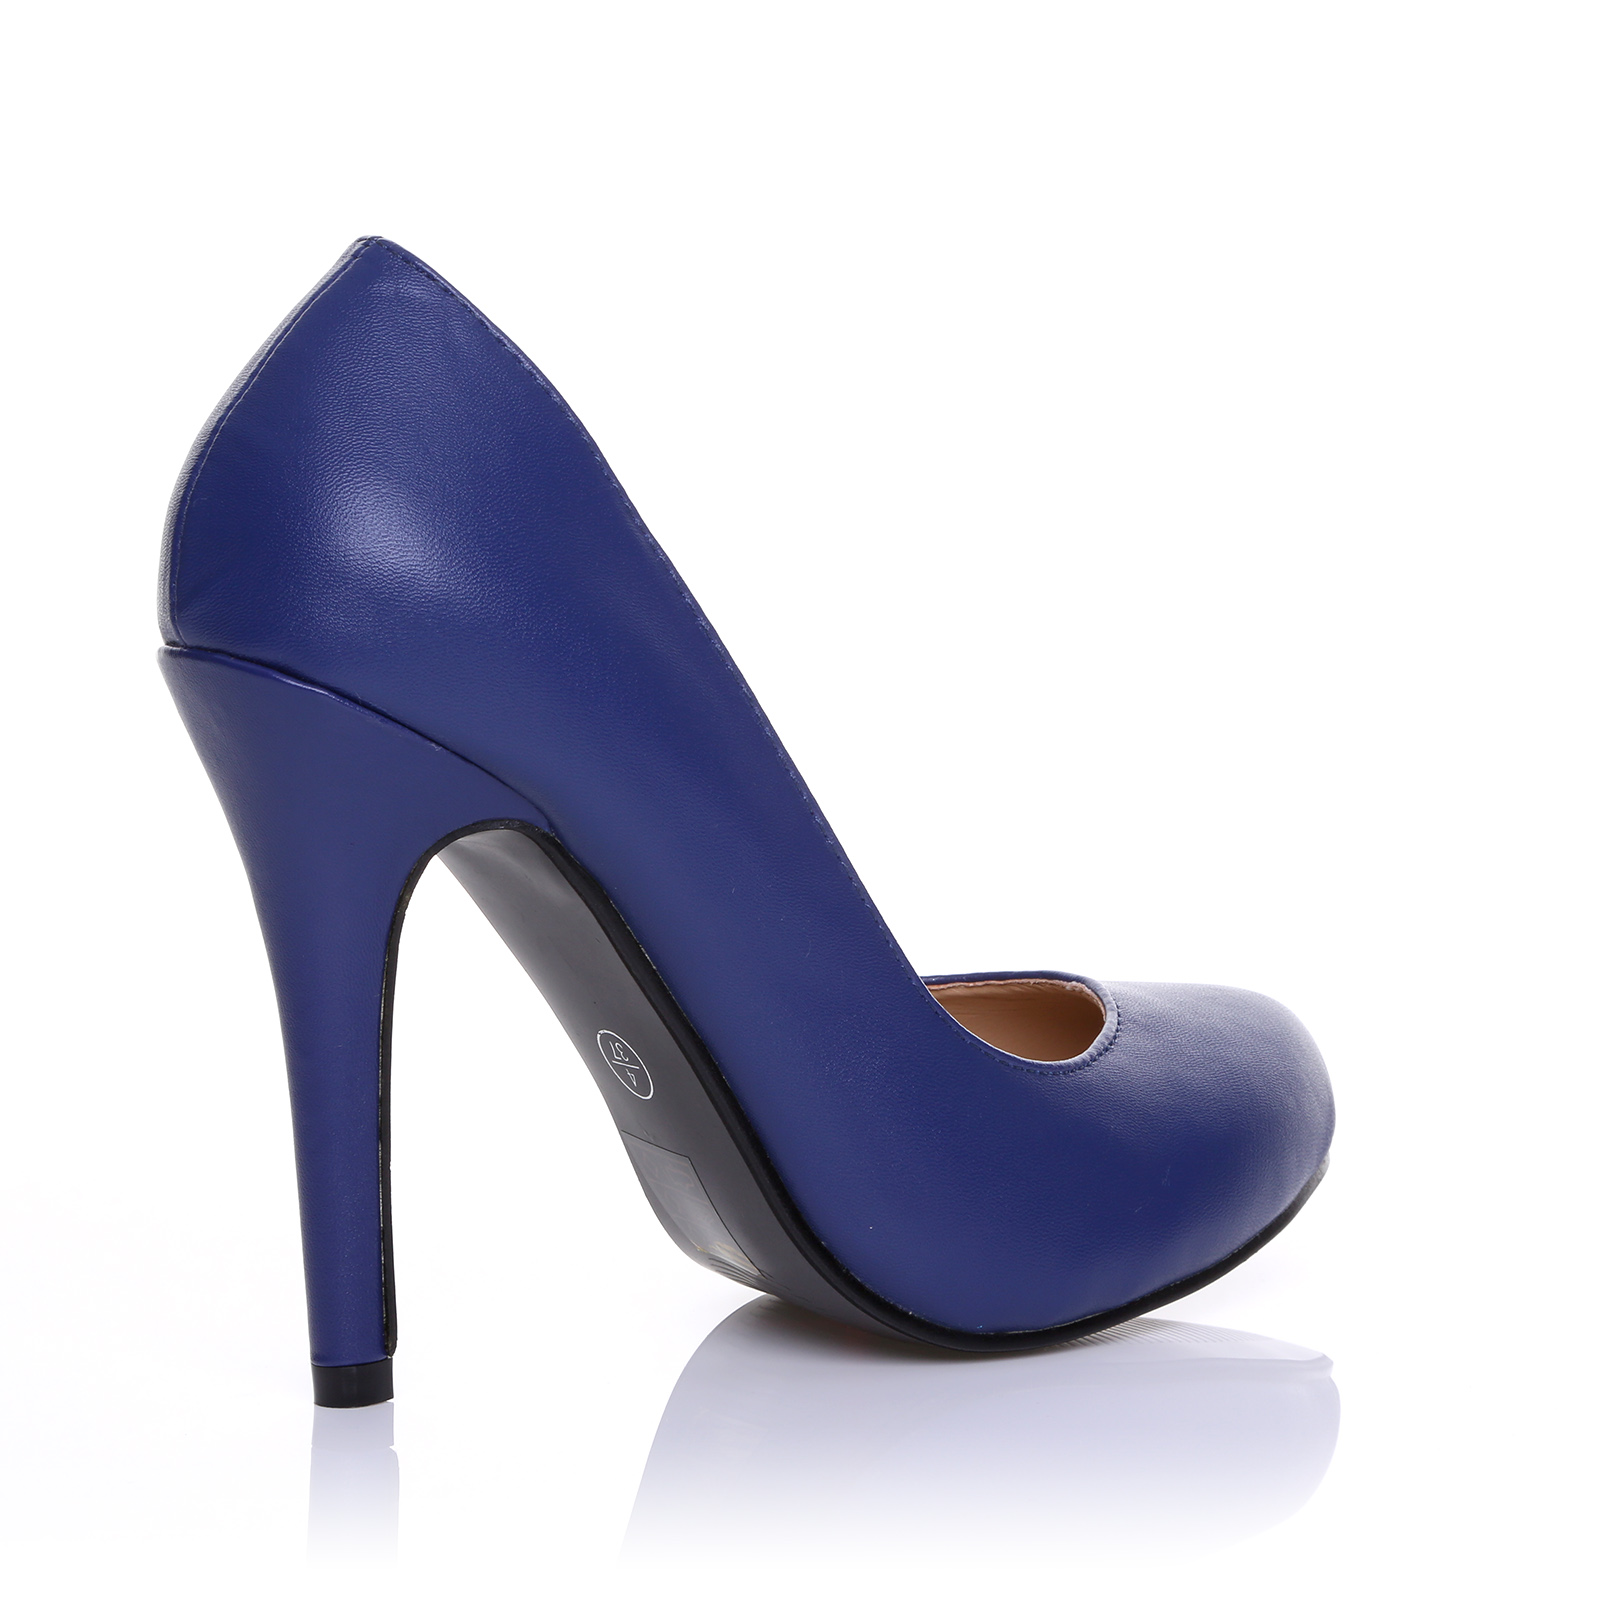 NEW-LADIES-STILETTO-HIGH-HEELS-MULTICOLOUR-COURT-SHOES-SIZE-3-4-5-6-7-8